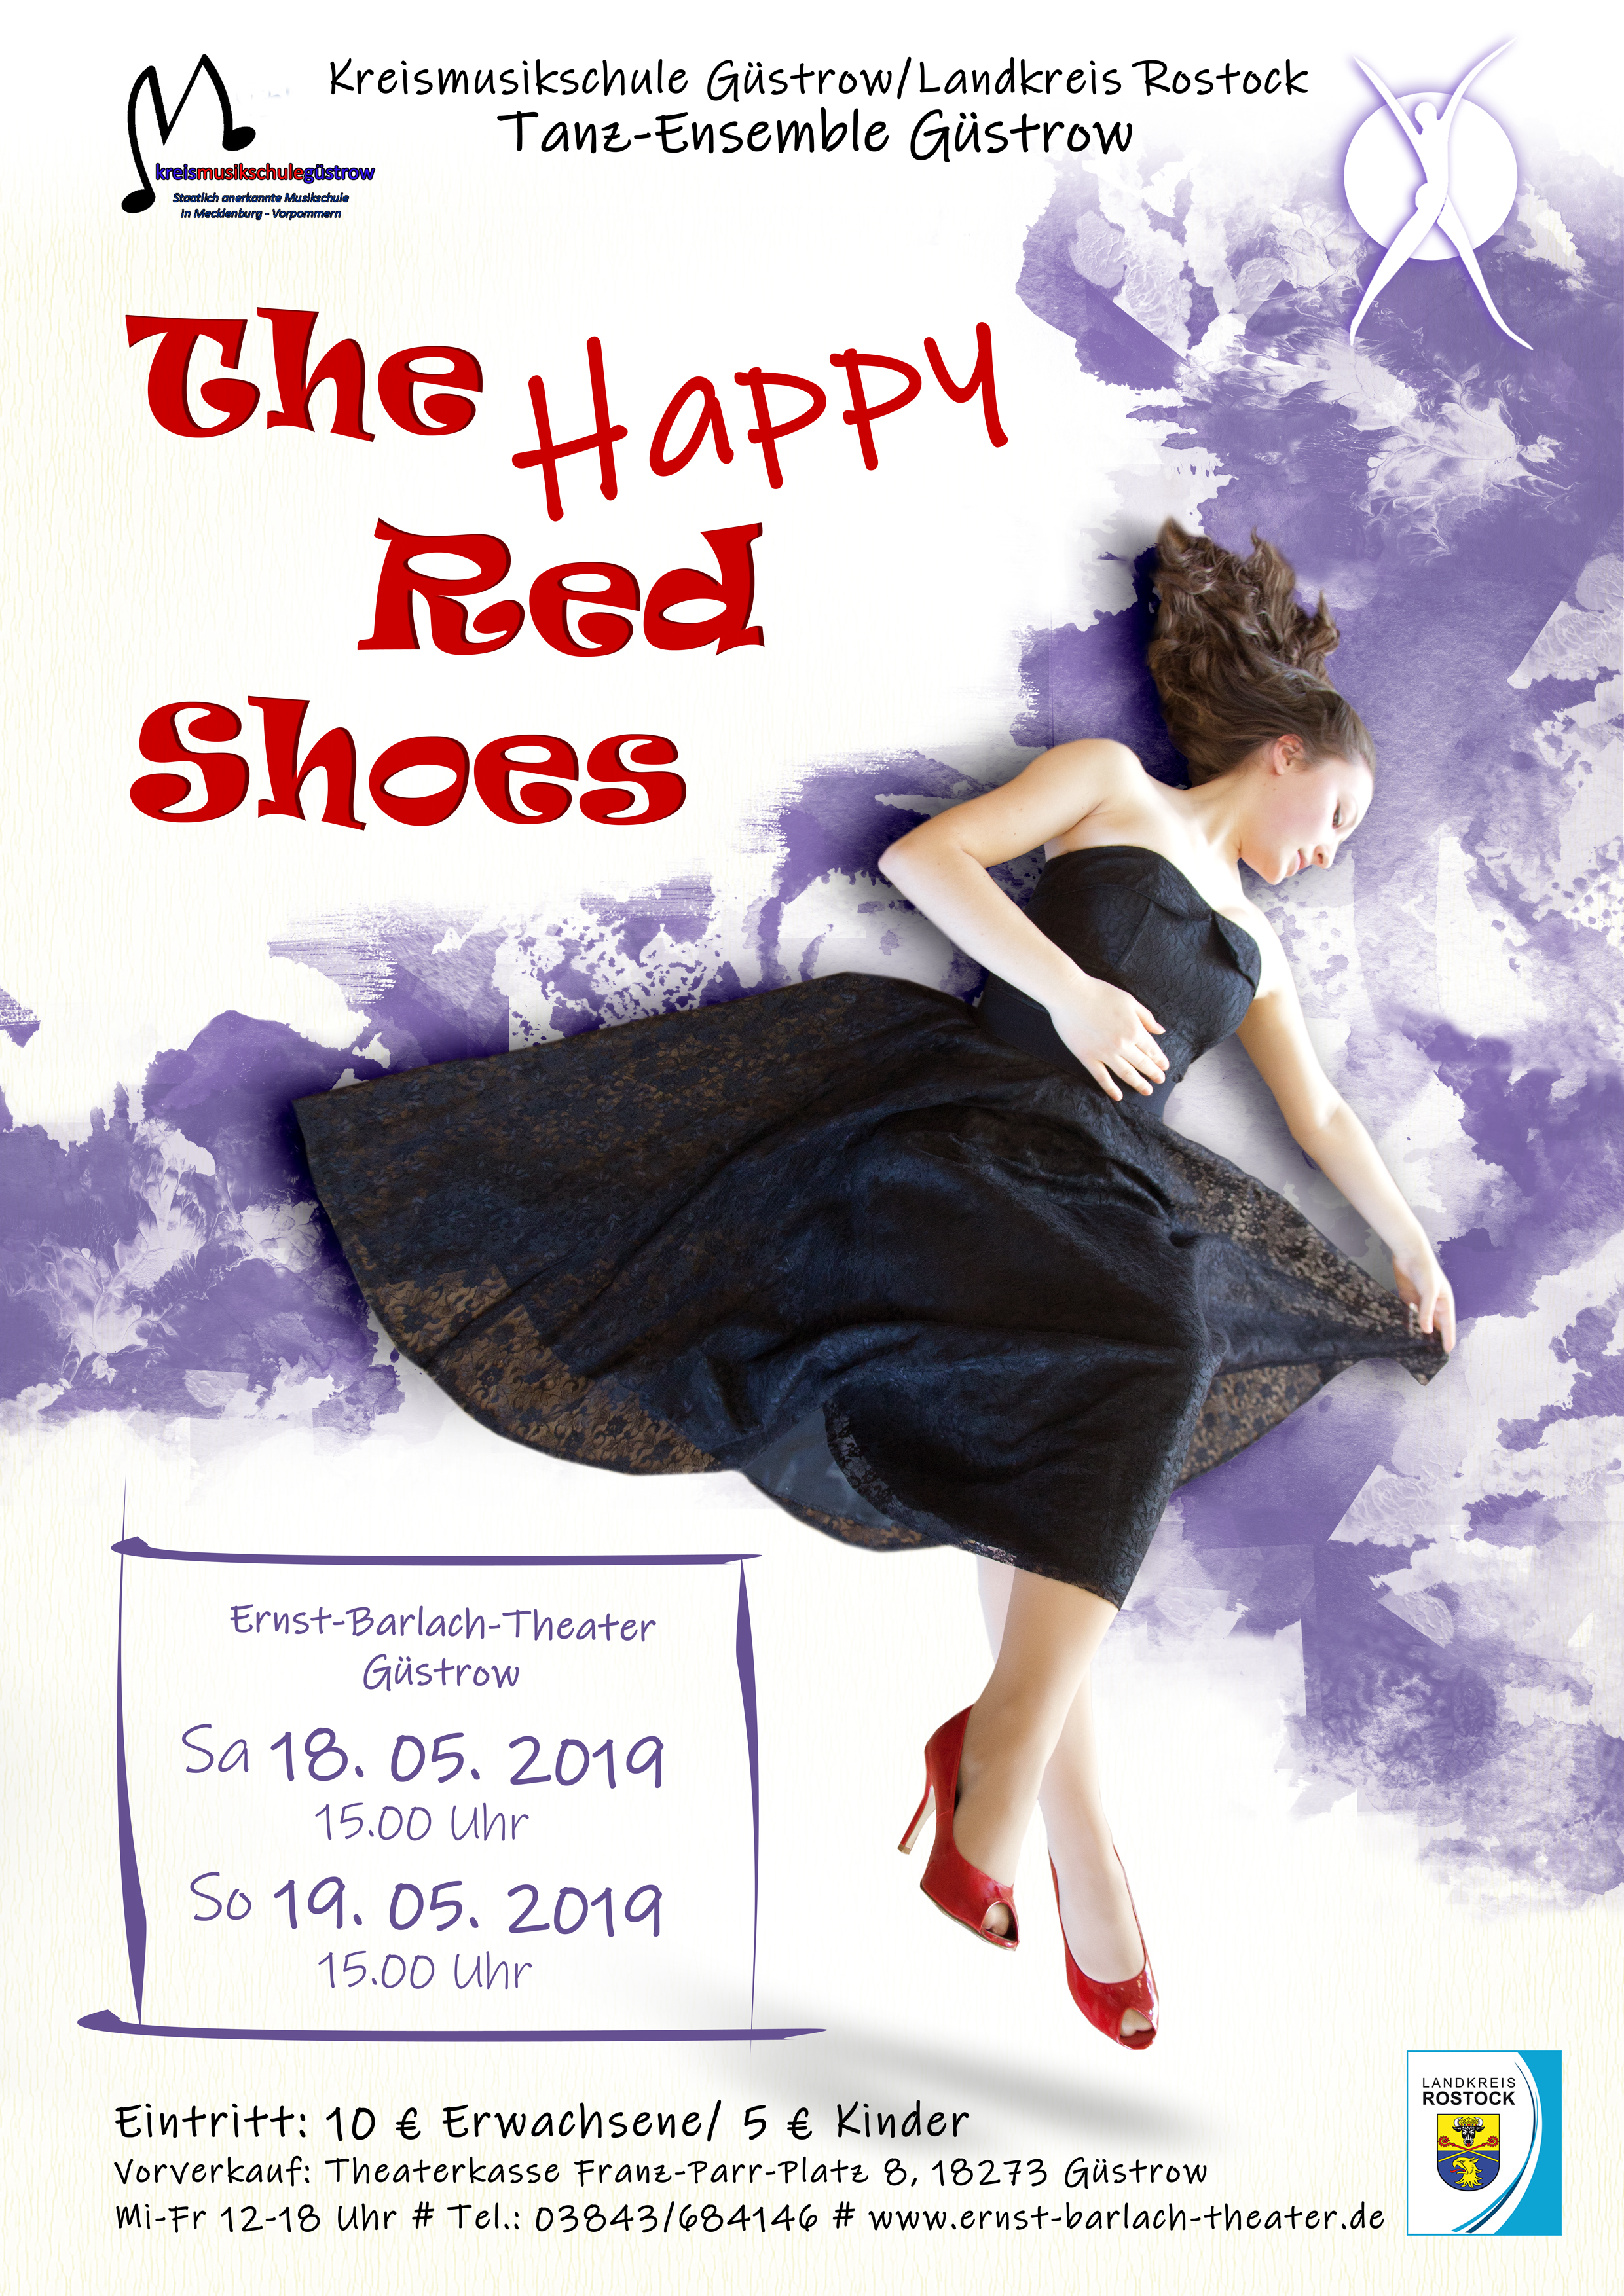 The Happy Red shoes